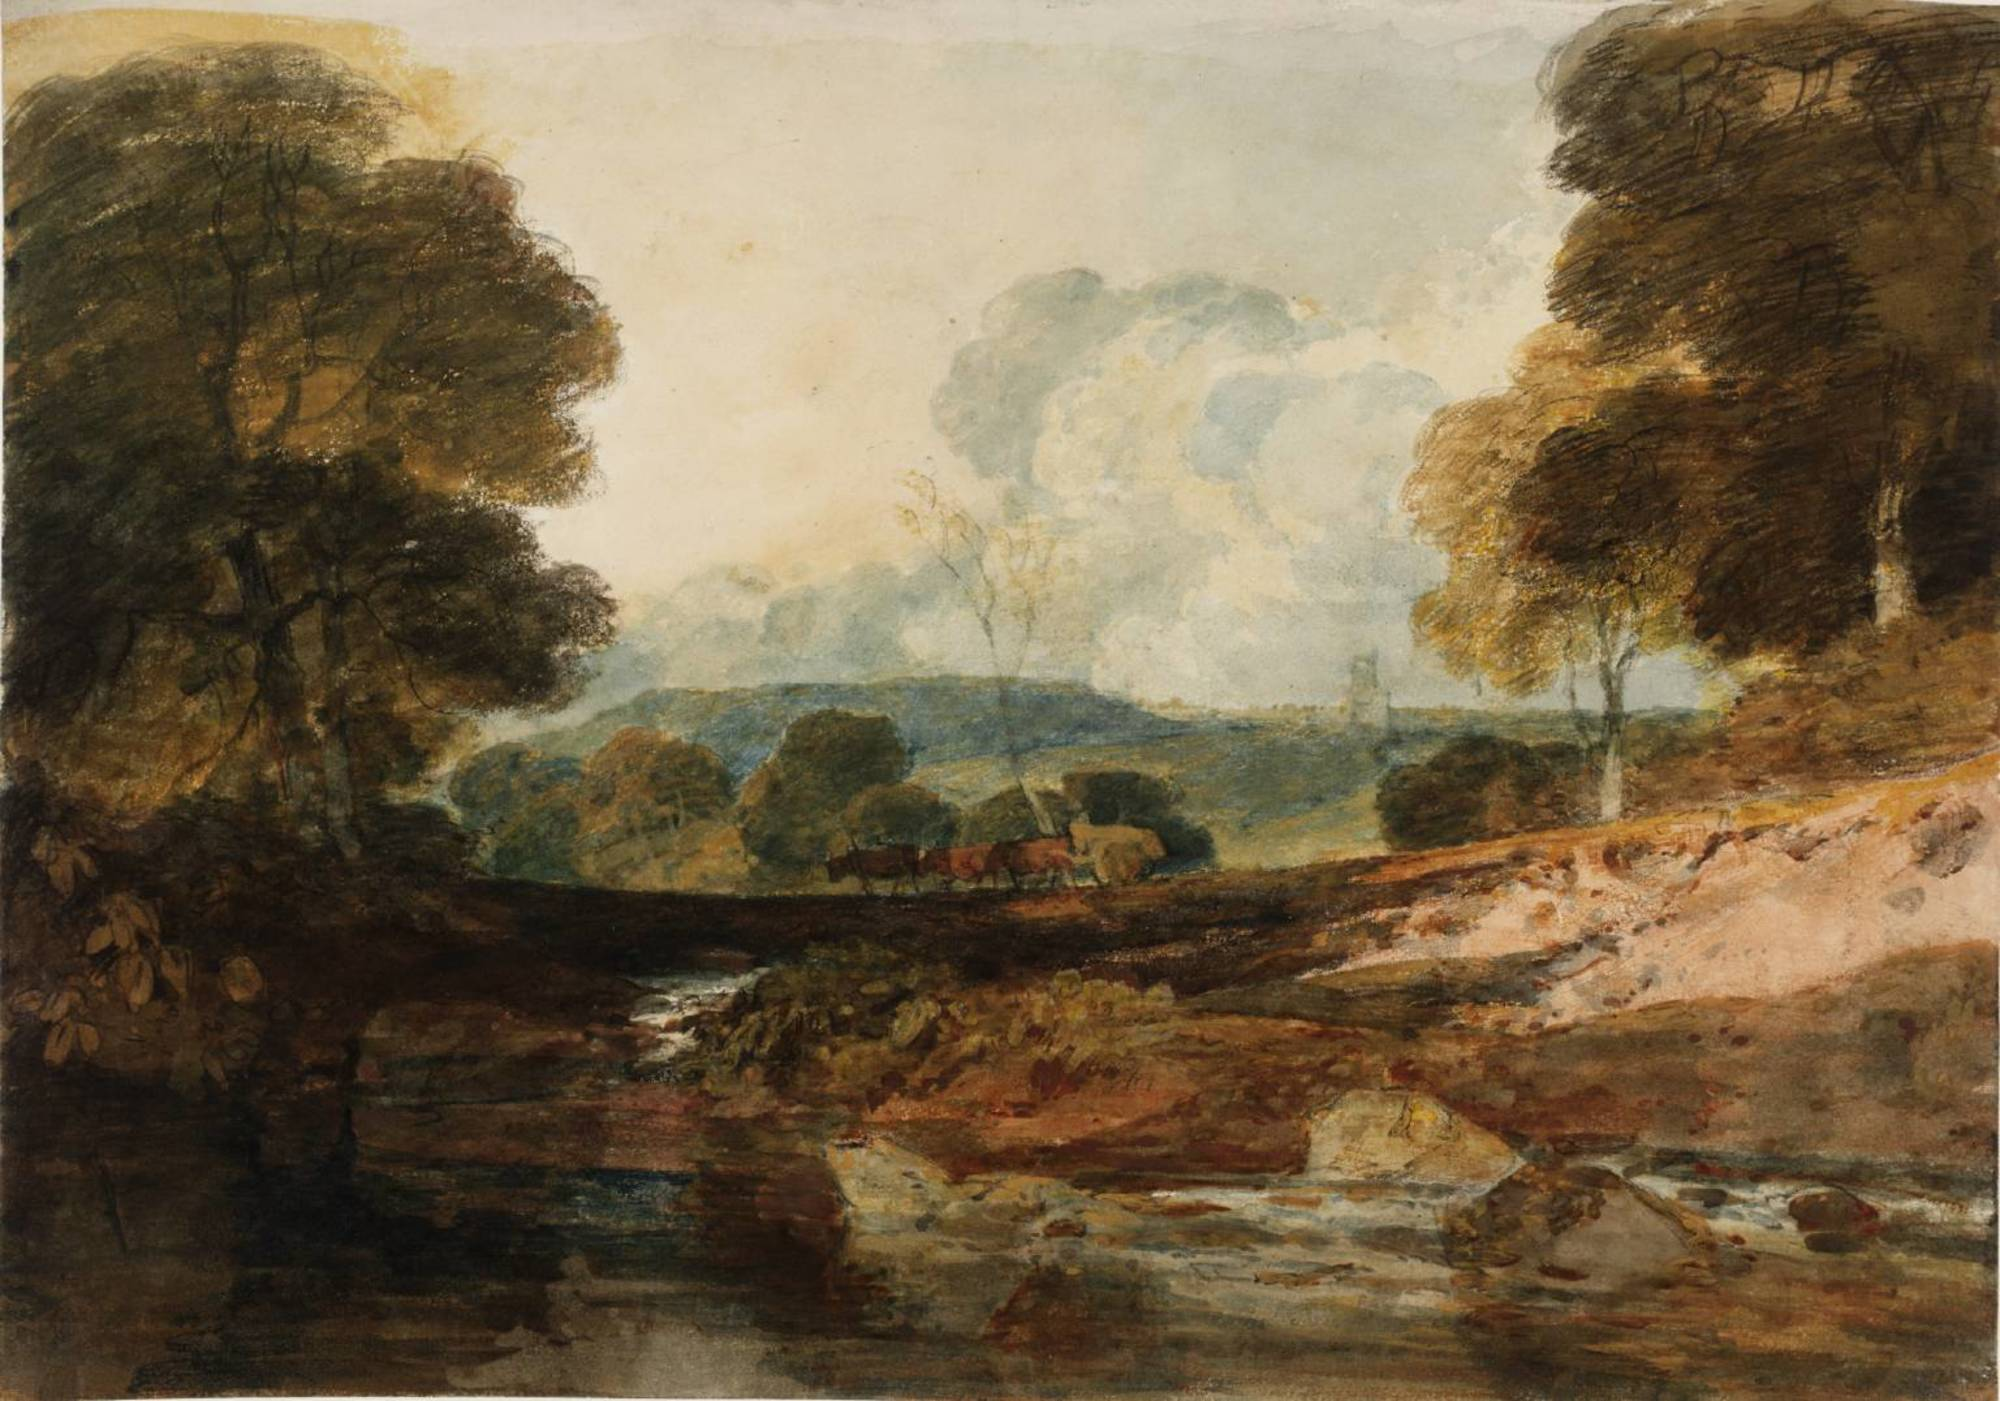 Distant-View-of-Fonthill-Abbey-from-the-East-with-the-Lake-in-the-Foreground-and-a-Team-of-Oxen-1799.jpg